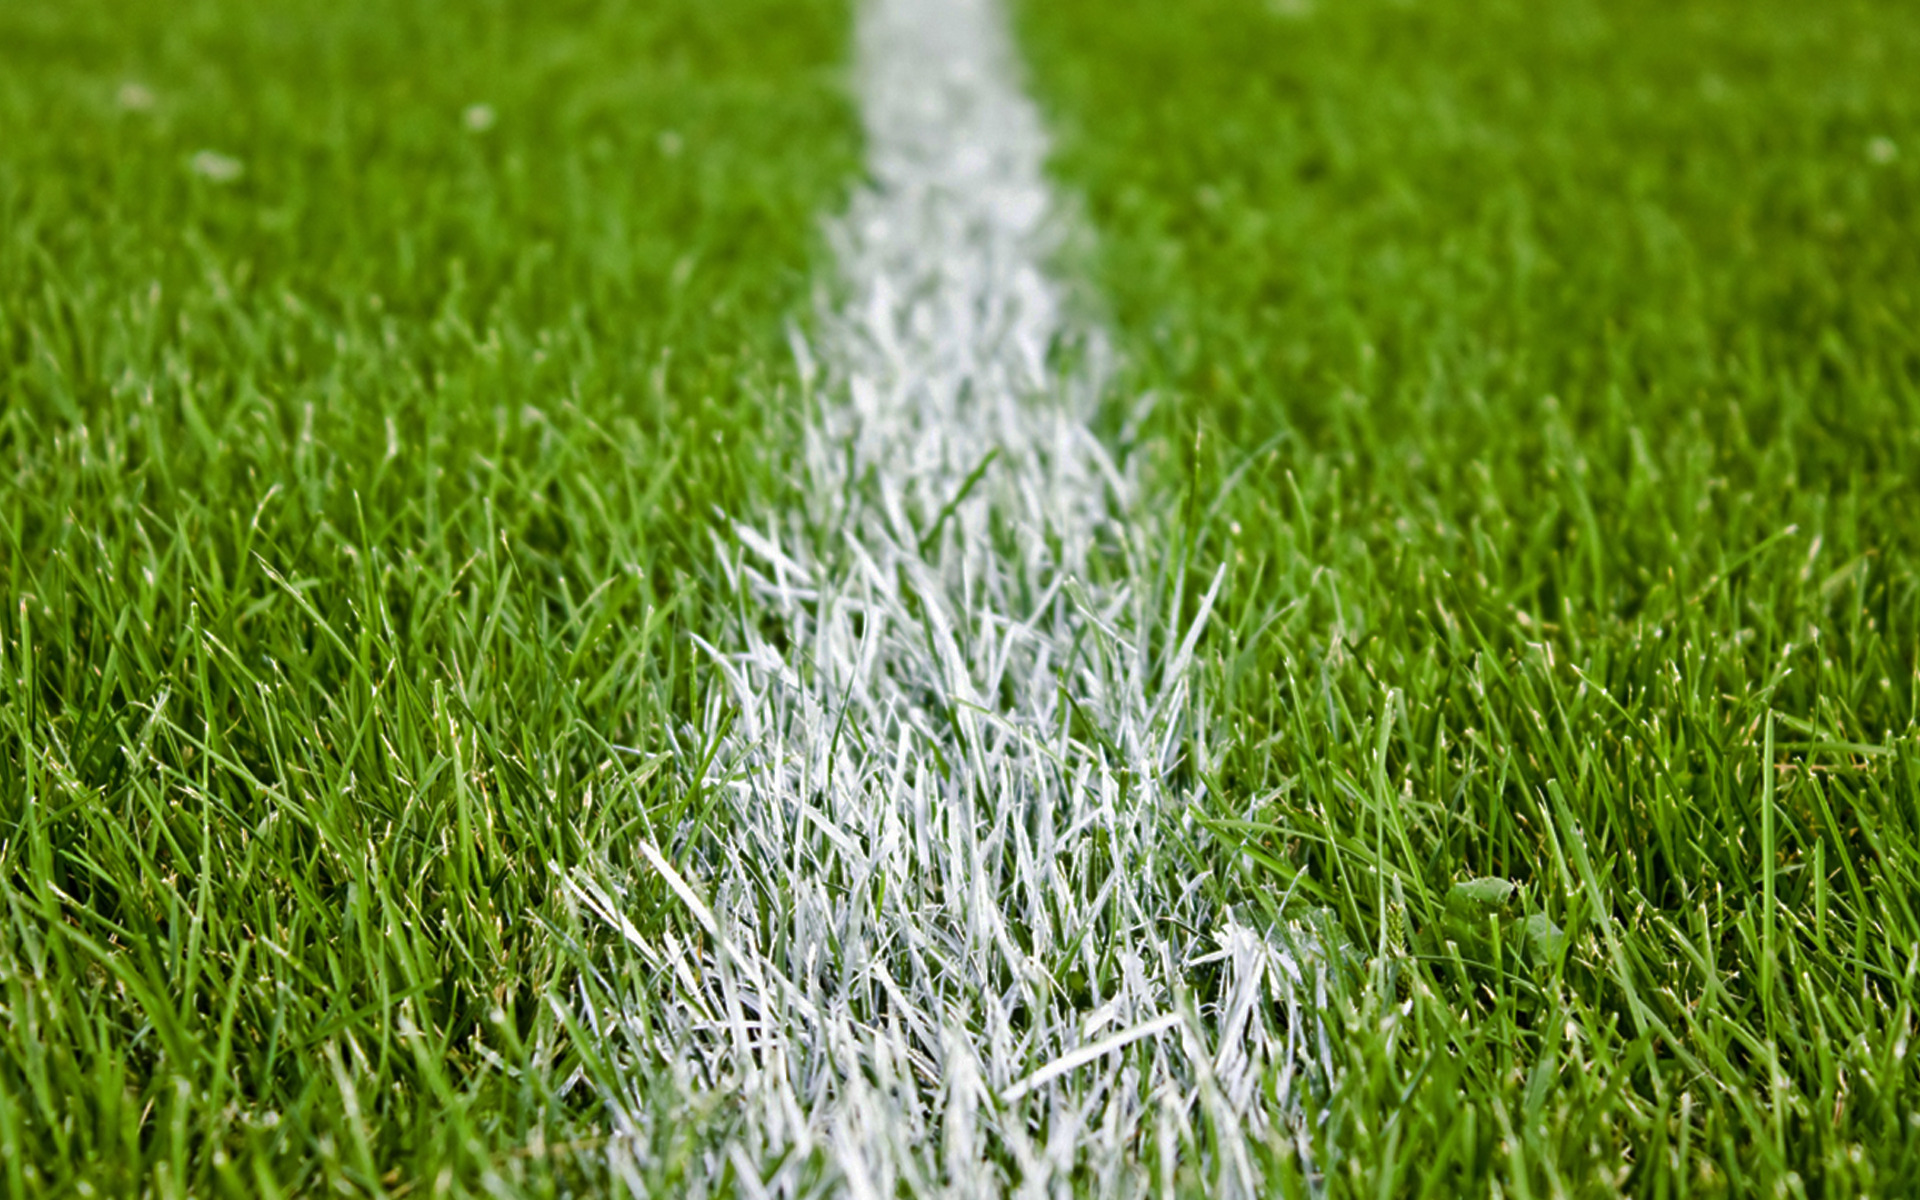 football-grass-pitch-101072.jpg